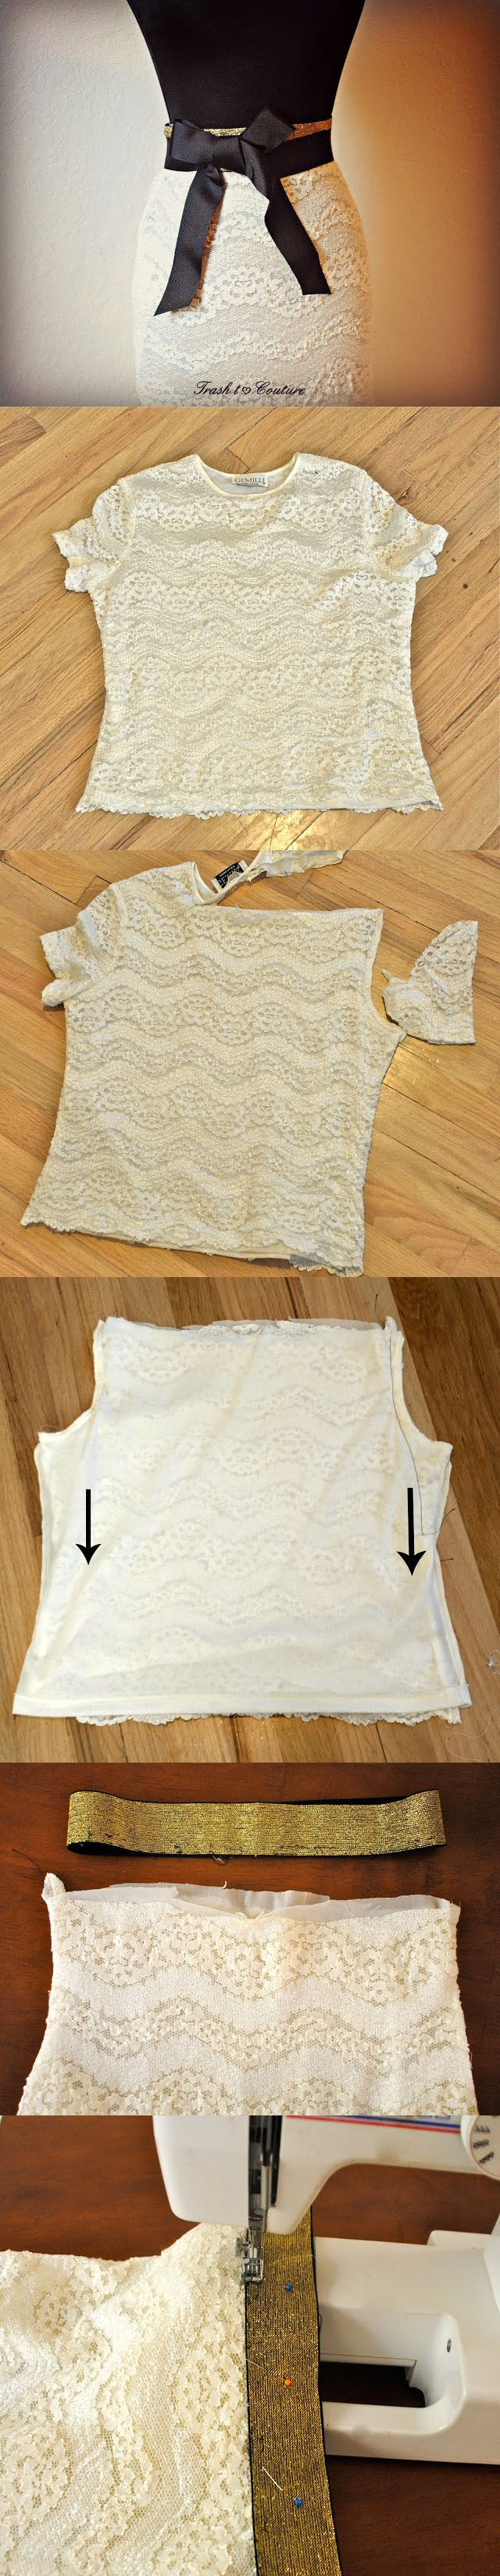 DIY IDEAS: Put the Fashion In Your Closet Hello! I will be doing this this weekend.